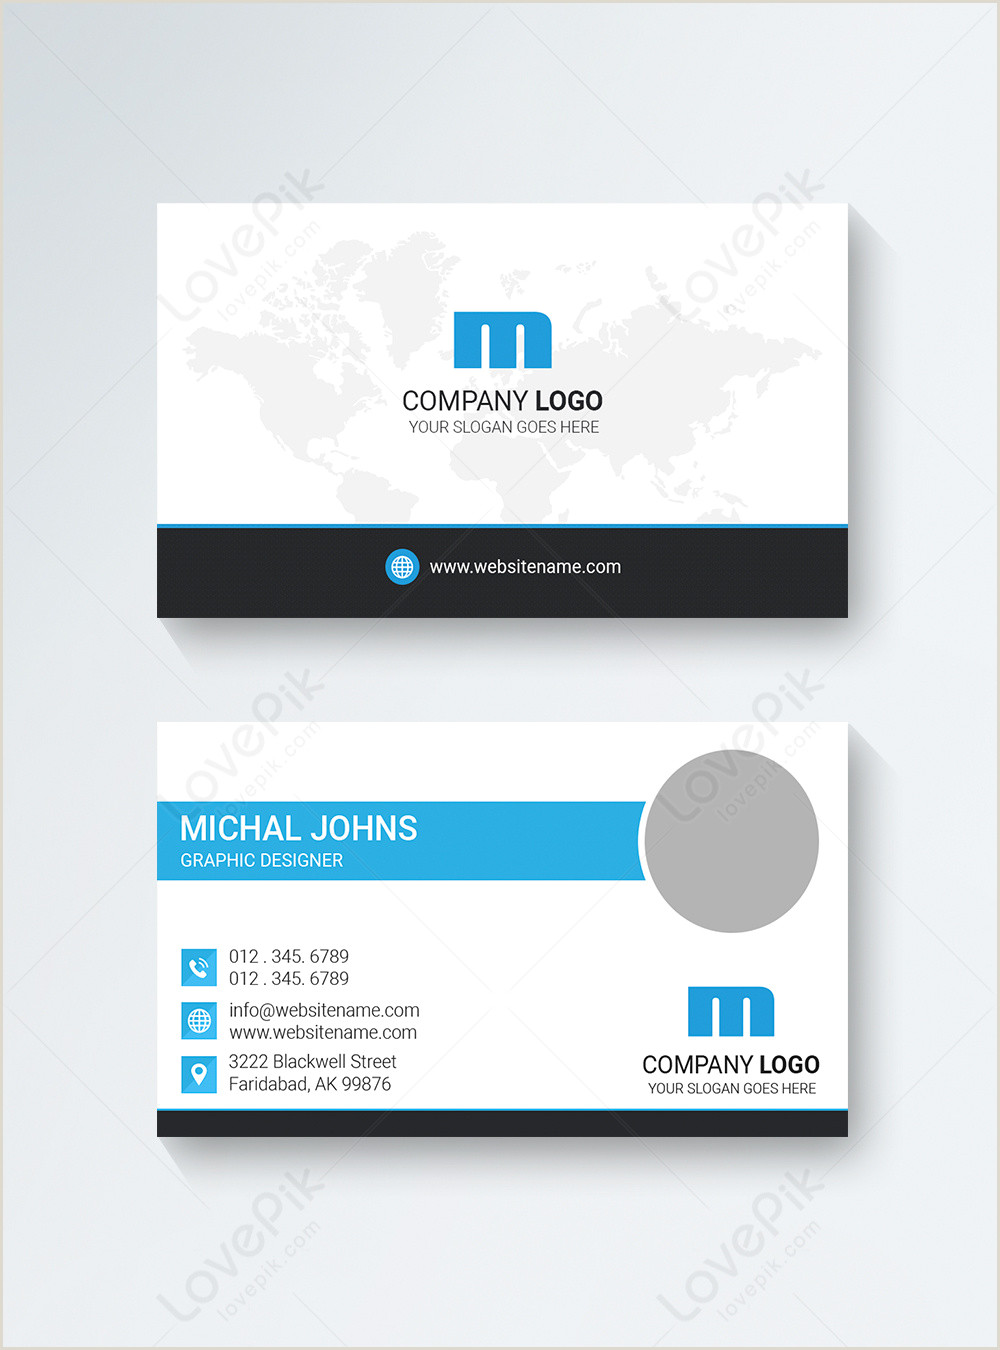 Business Card White White And Blue Pany Business Card Template Image Picture